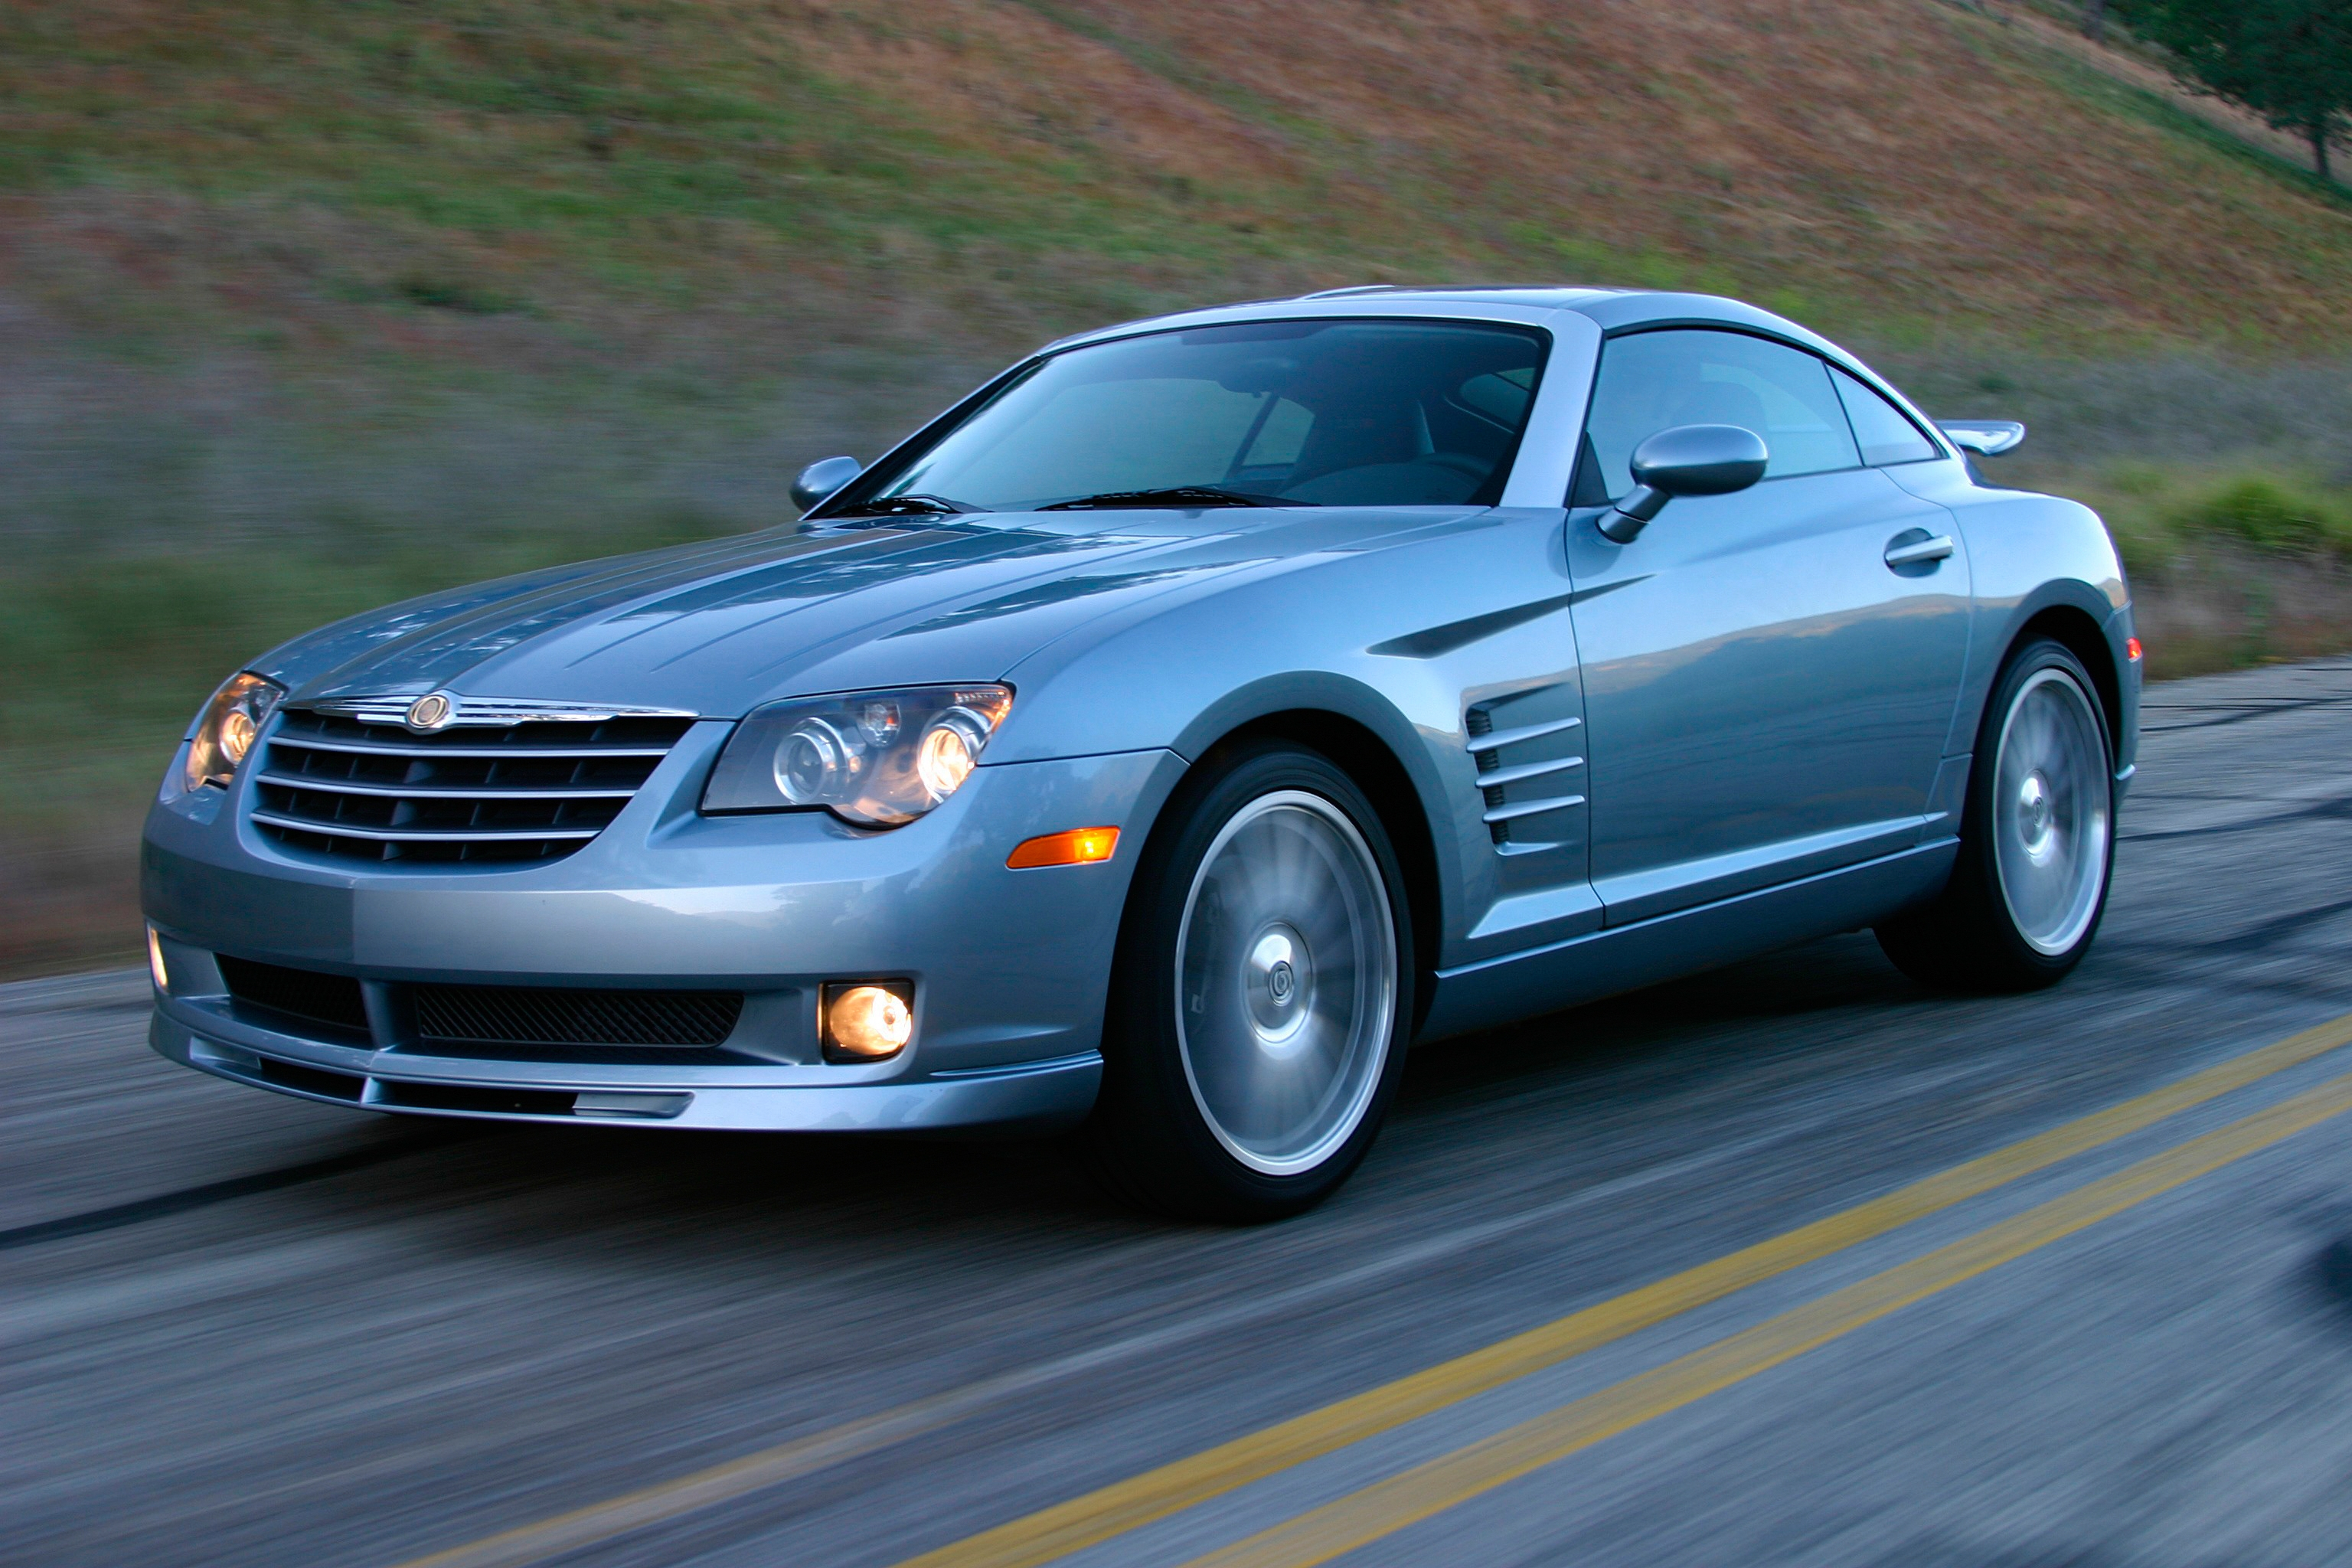 wallpaper crossfireforum the chrysler crossfire and srt6 resource. Cars Review. Best American Auto & Cars Review